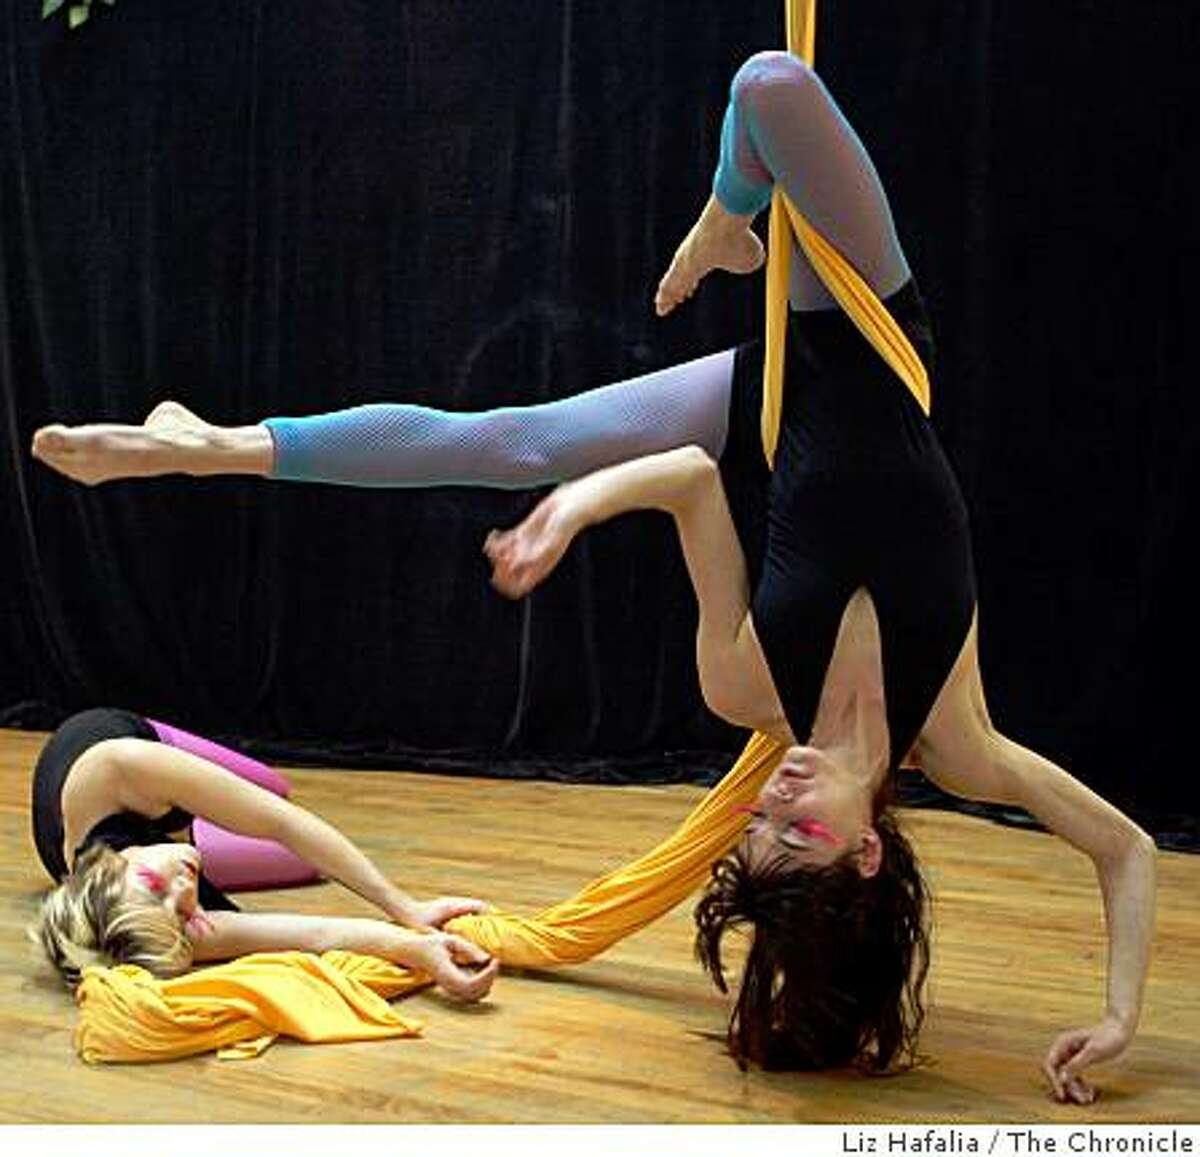 Ana Hyatt (left) and Amanda Bassolino (right), dancers of Cirque Noir rehearsing a new show in San Francisco, Calif. on Tuesday, March 31, 2009.